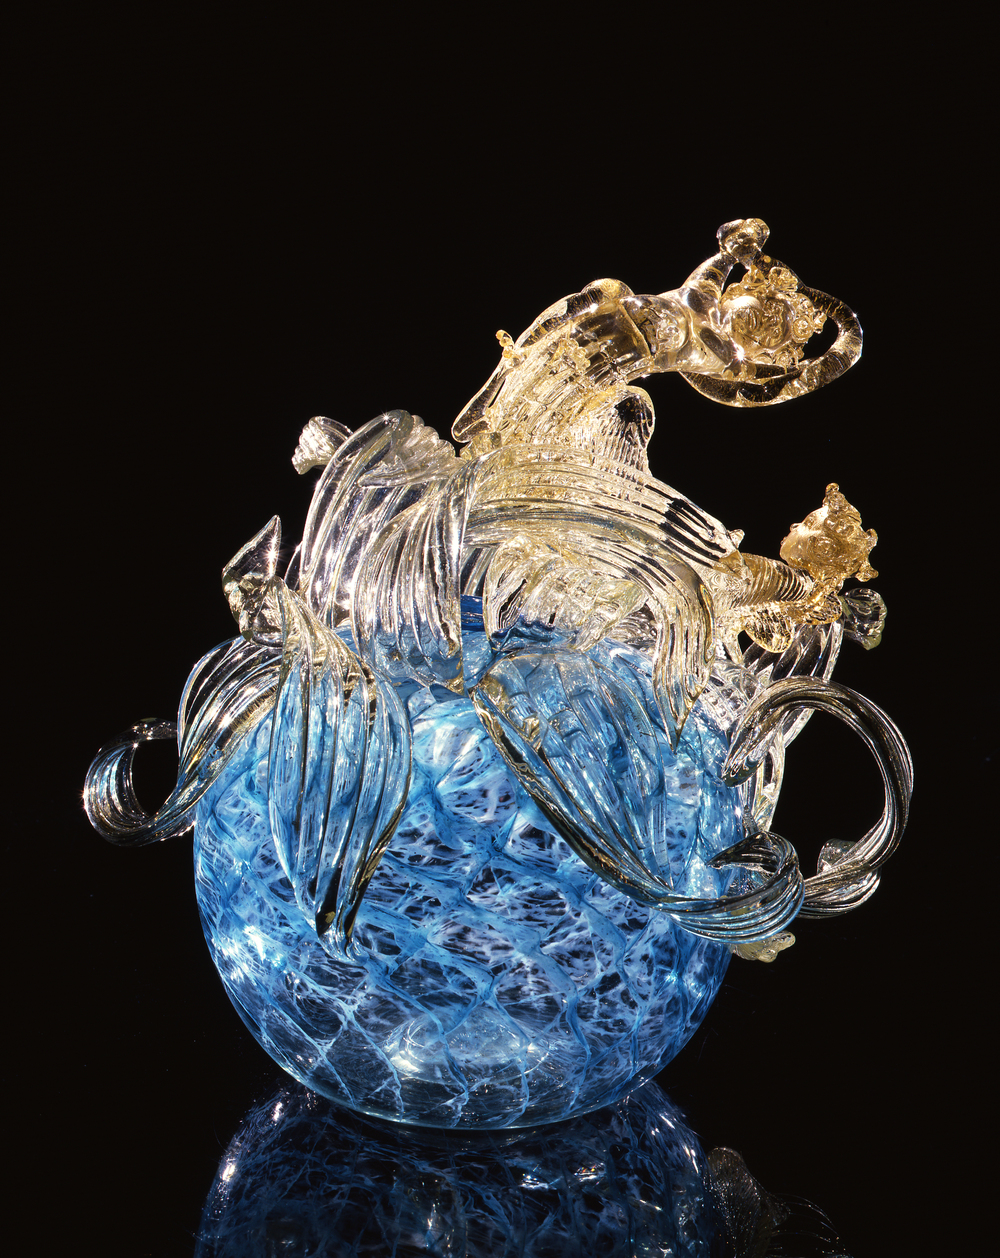 Dale Chihuly,  Translucent Blue PIccolo Venetian with Gilt Leaves and Dragons  (1994, glass, 17 x 16 x 14 inches)